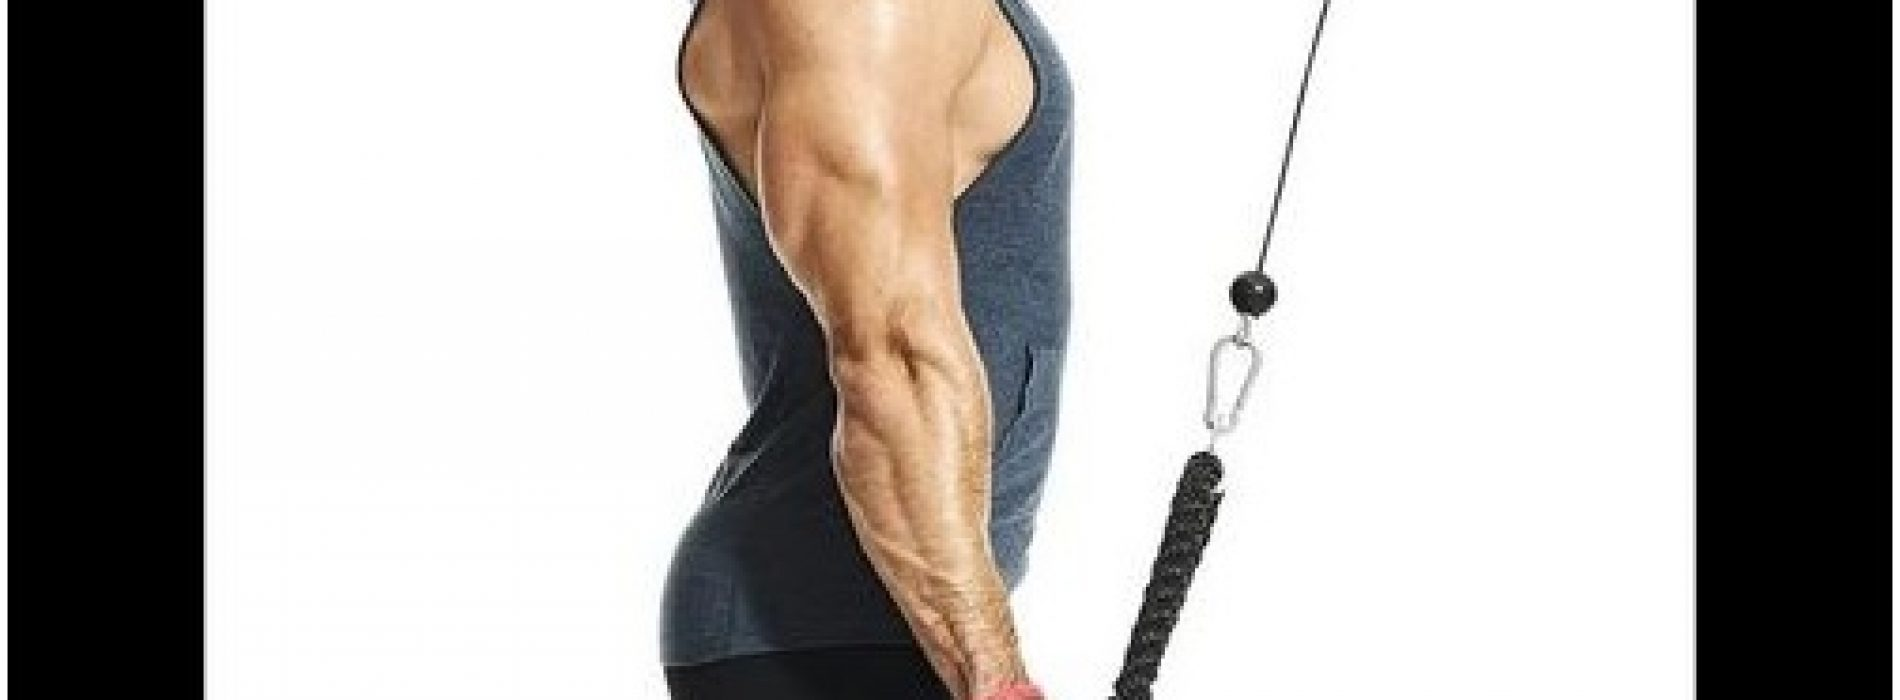 How to learn to run fast with Anabolic Steroids?